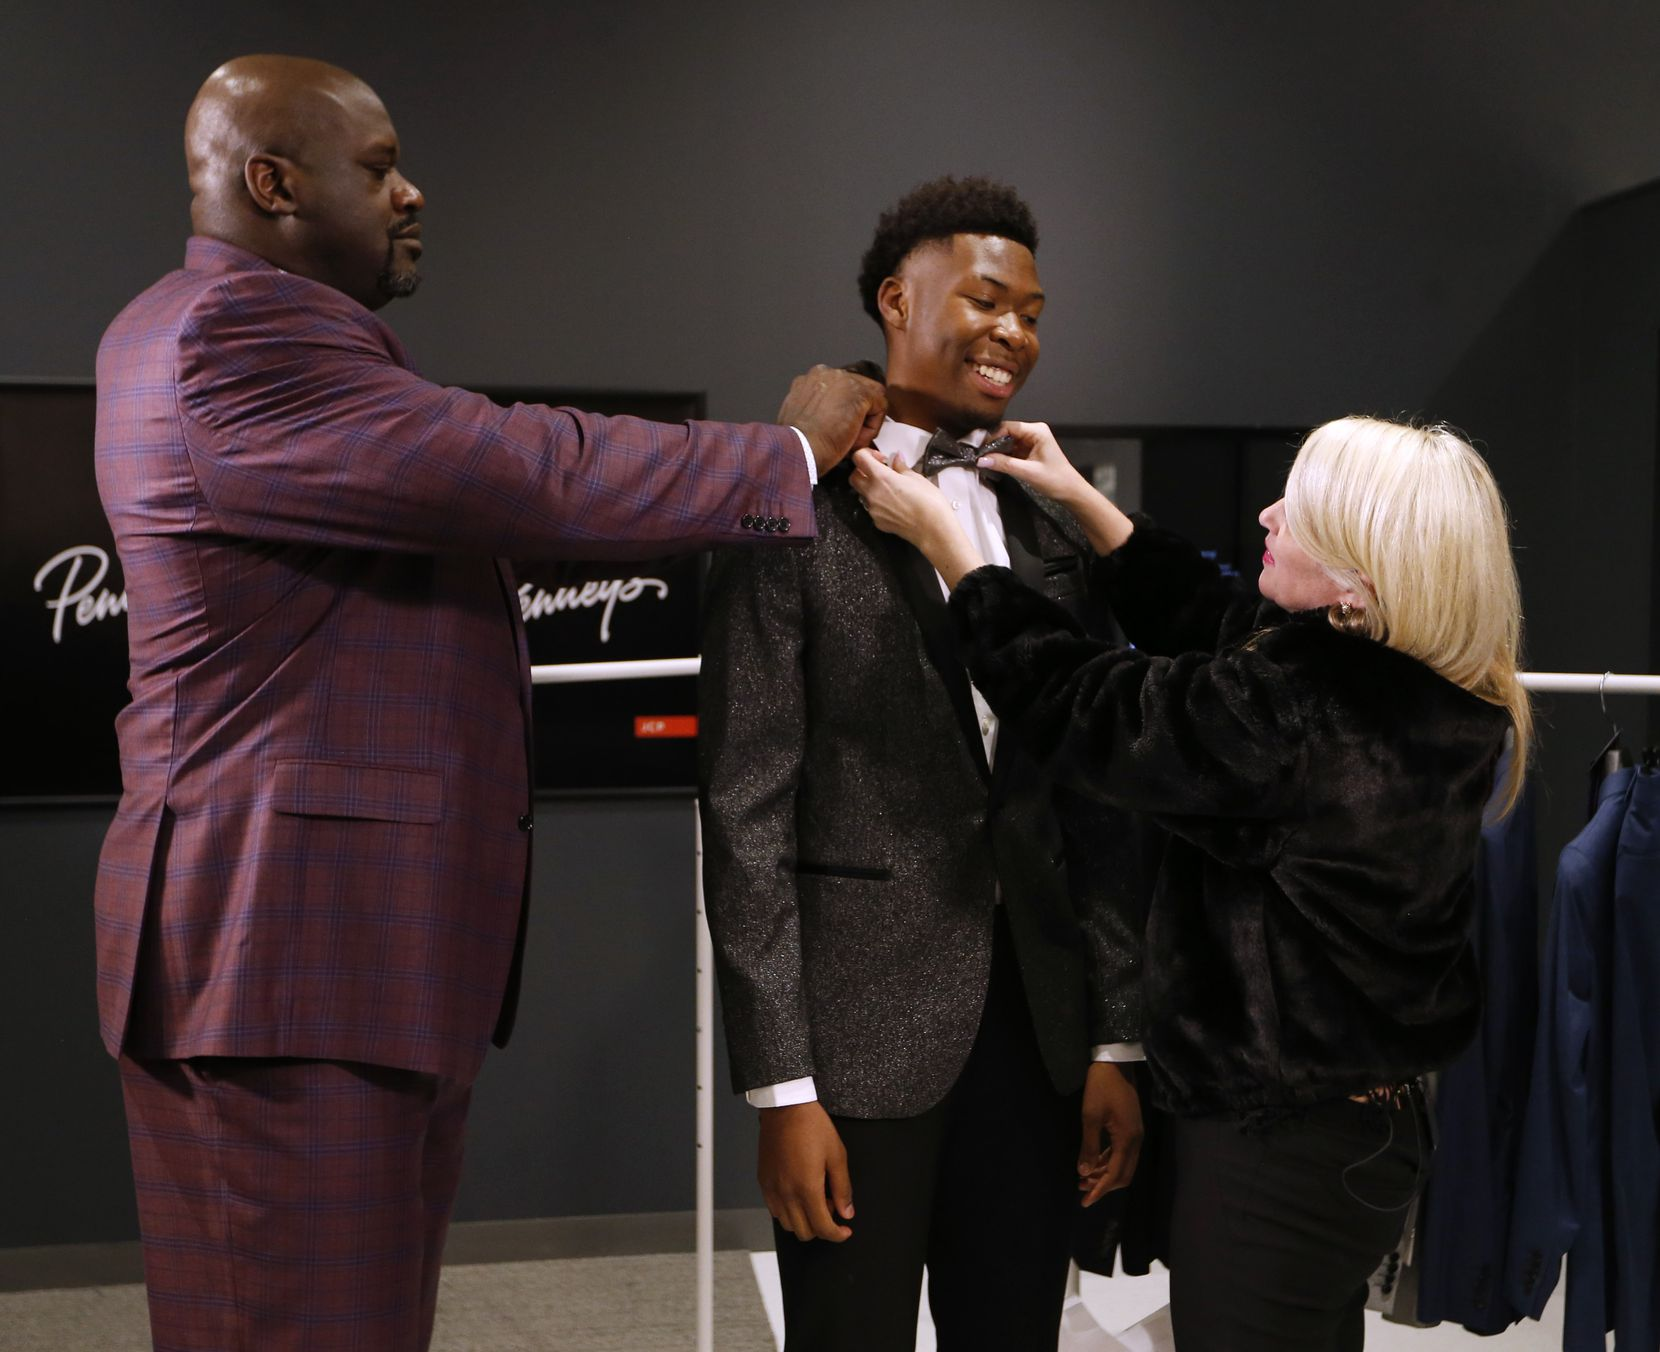 Shaquille O'Neal (left) and Sage McEuin (right), senior styling director at J.C. Penney, work on putting a tie on South Oak Cliff's Kylon Owens (center), 17, at J.C. Penney's Northeast Mall location in Hurst, Texas on Wednesday, January 15, 2020. J.C. Penney and Shaquille O'Neal surprised Owens with a big & tall wardrobe fitting at the store.